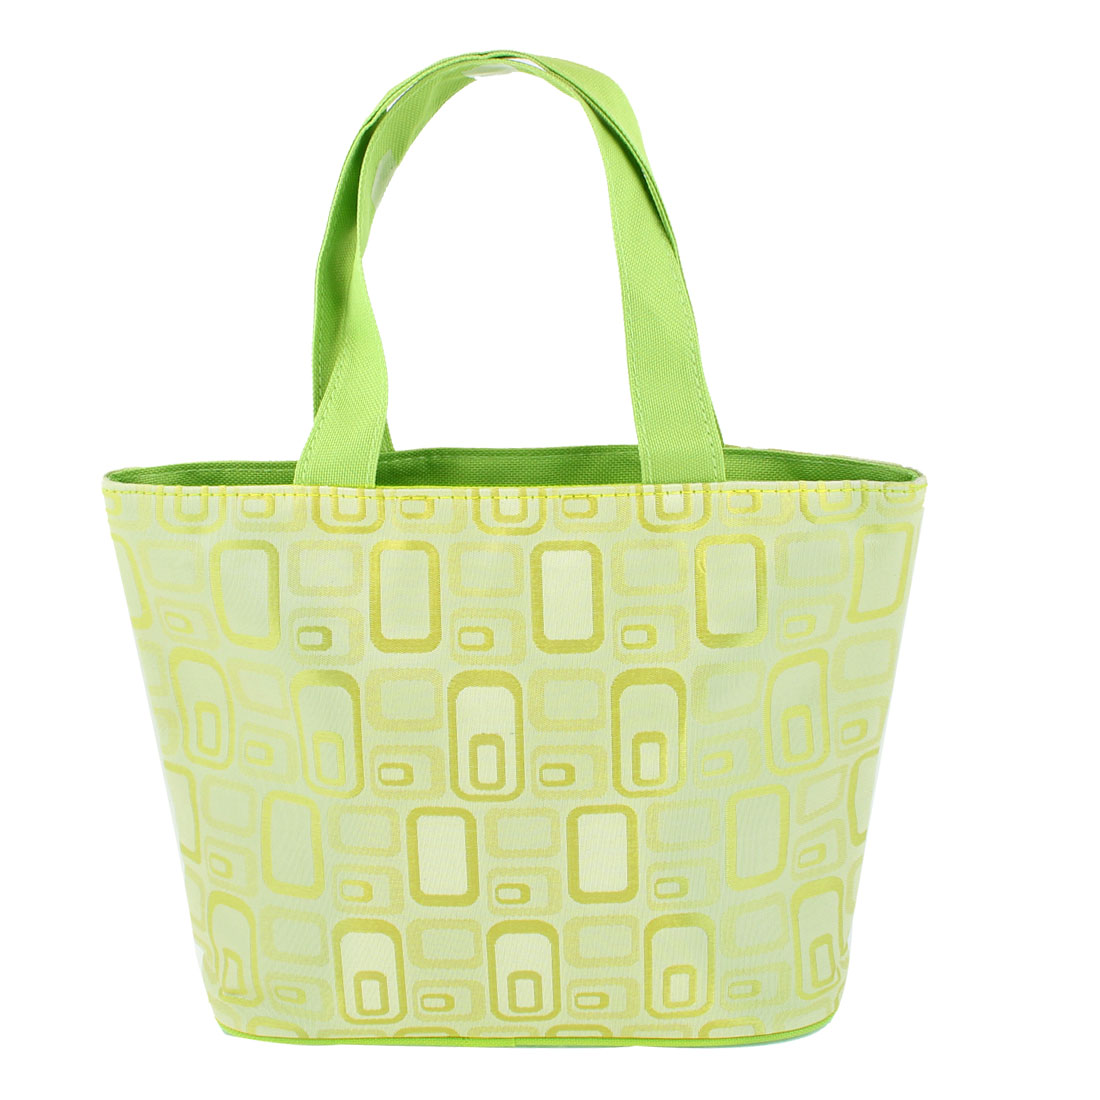 Household Square Pattern Zip Up Foldable Shopping Handbag Tote Light Green